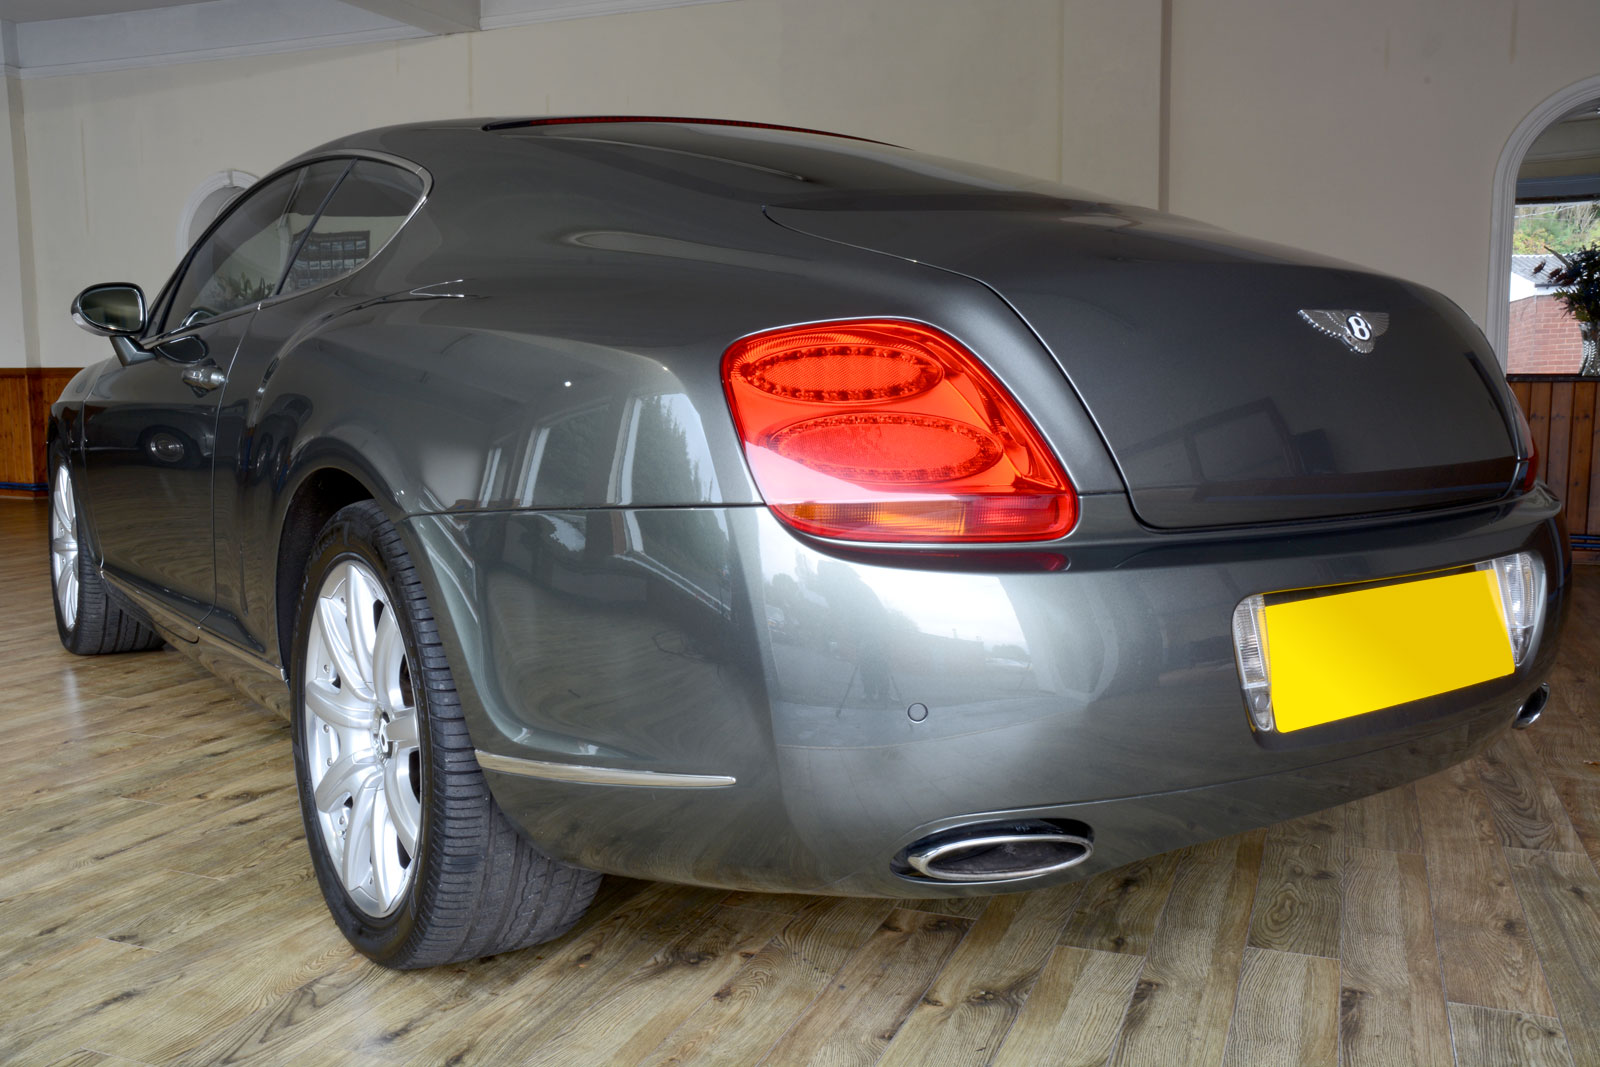 2006 MY Bentley Continental GT